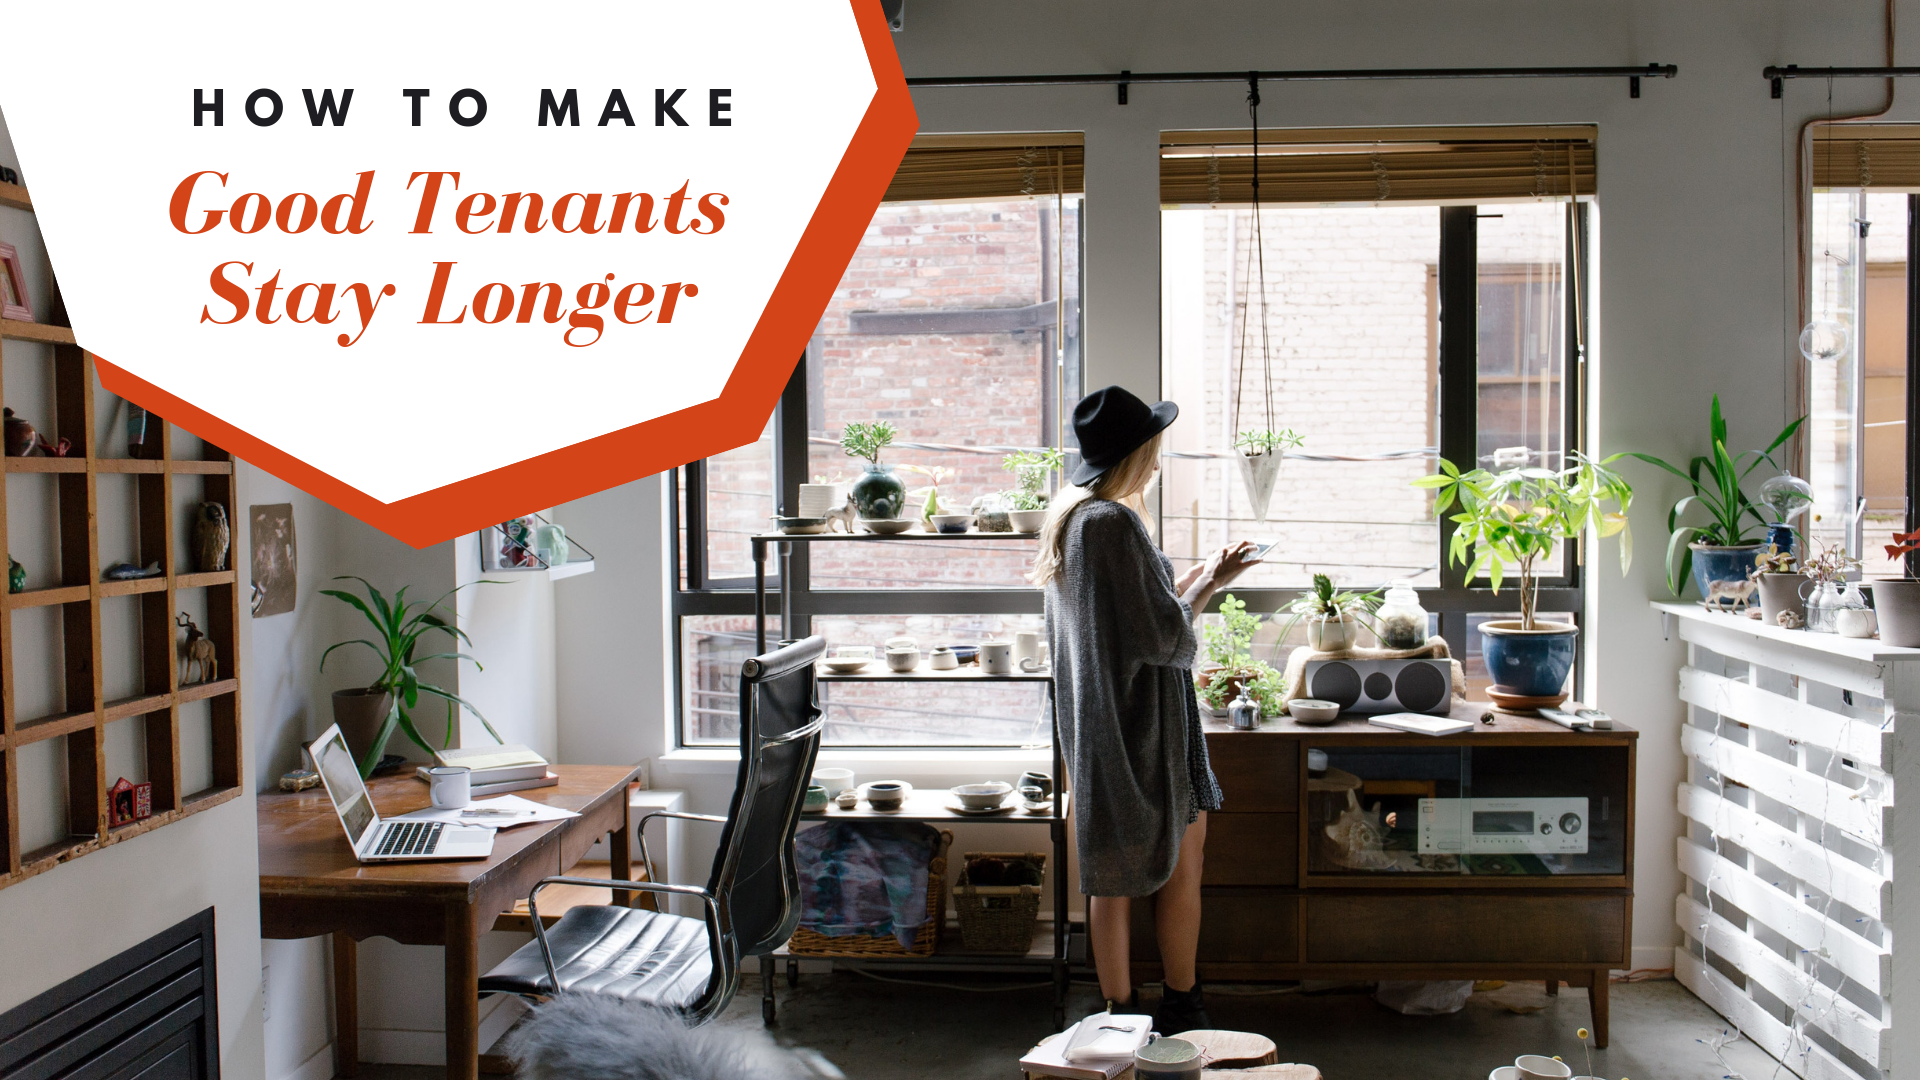 Tenant Retention 101: How to Make Good Tenants Stay Longer | Atlanta Property Management Education